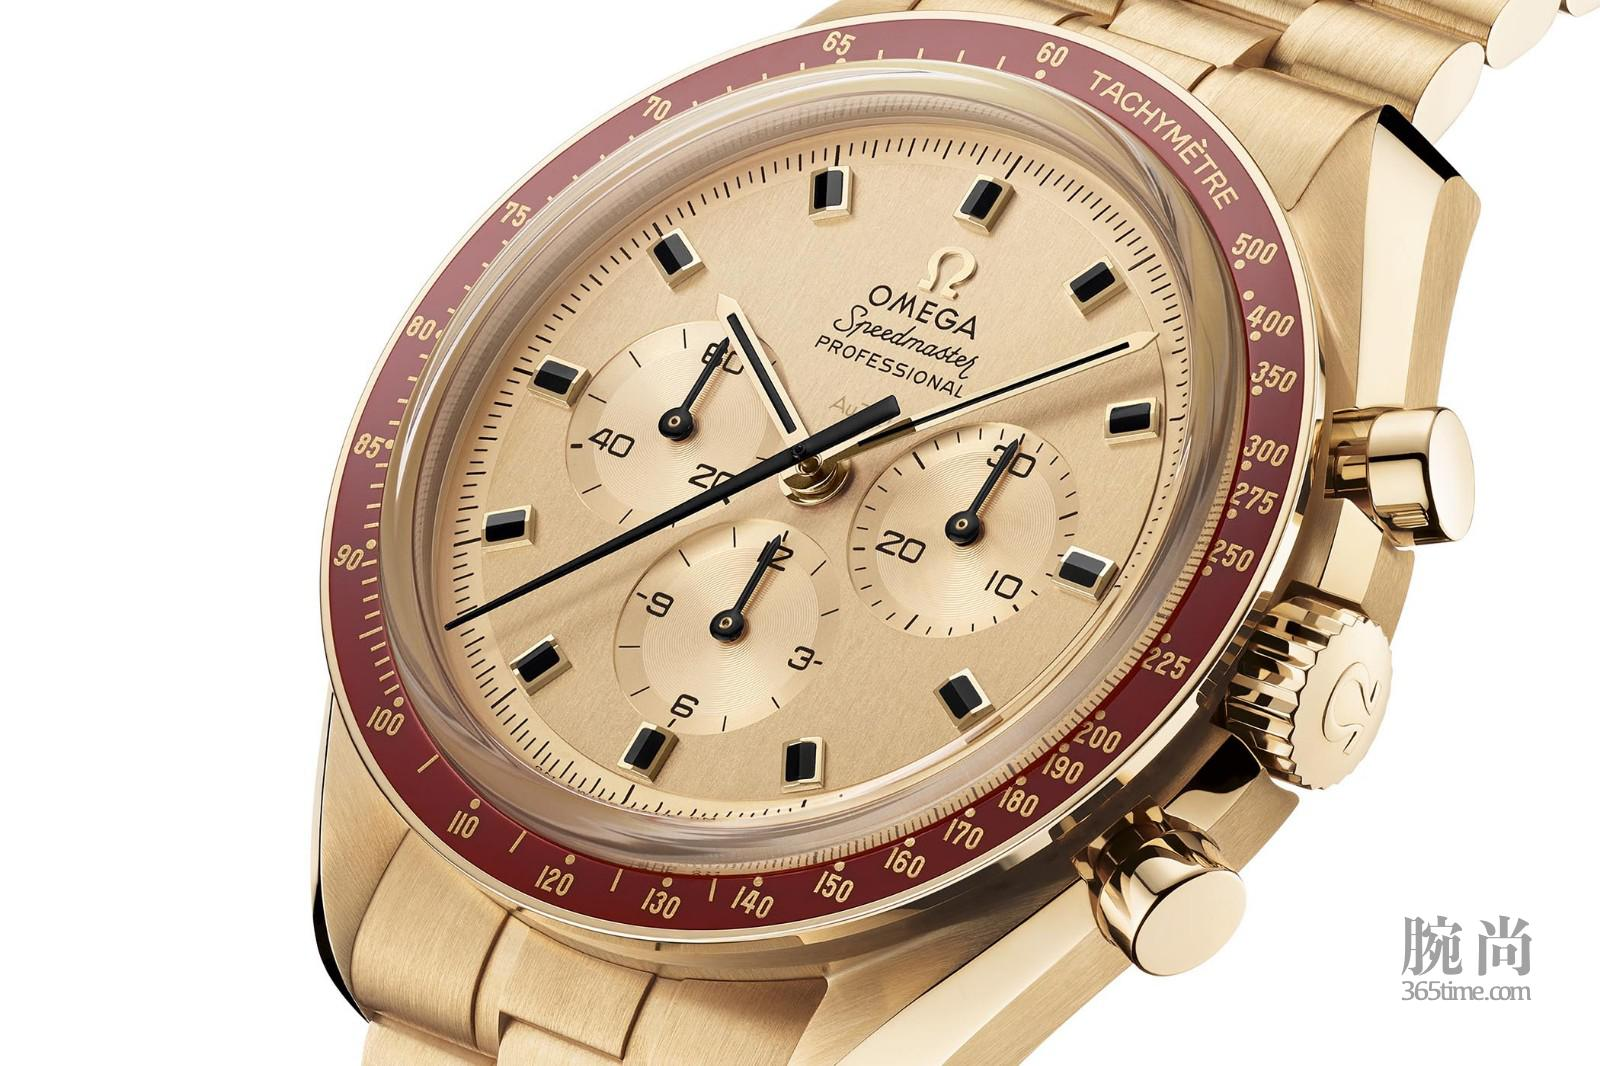 Omega-Speedmaster-Apollo-11-50th-Anniversary-Limited-Edition-310.60.42.50.99.001-3.jpg